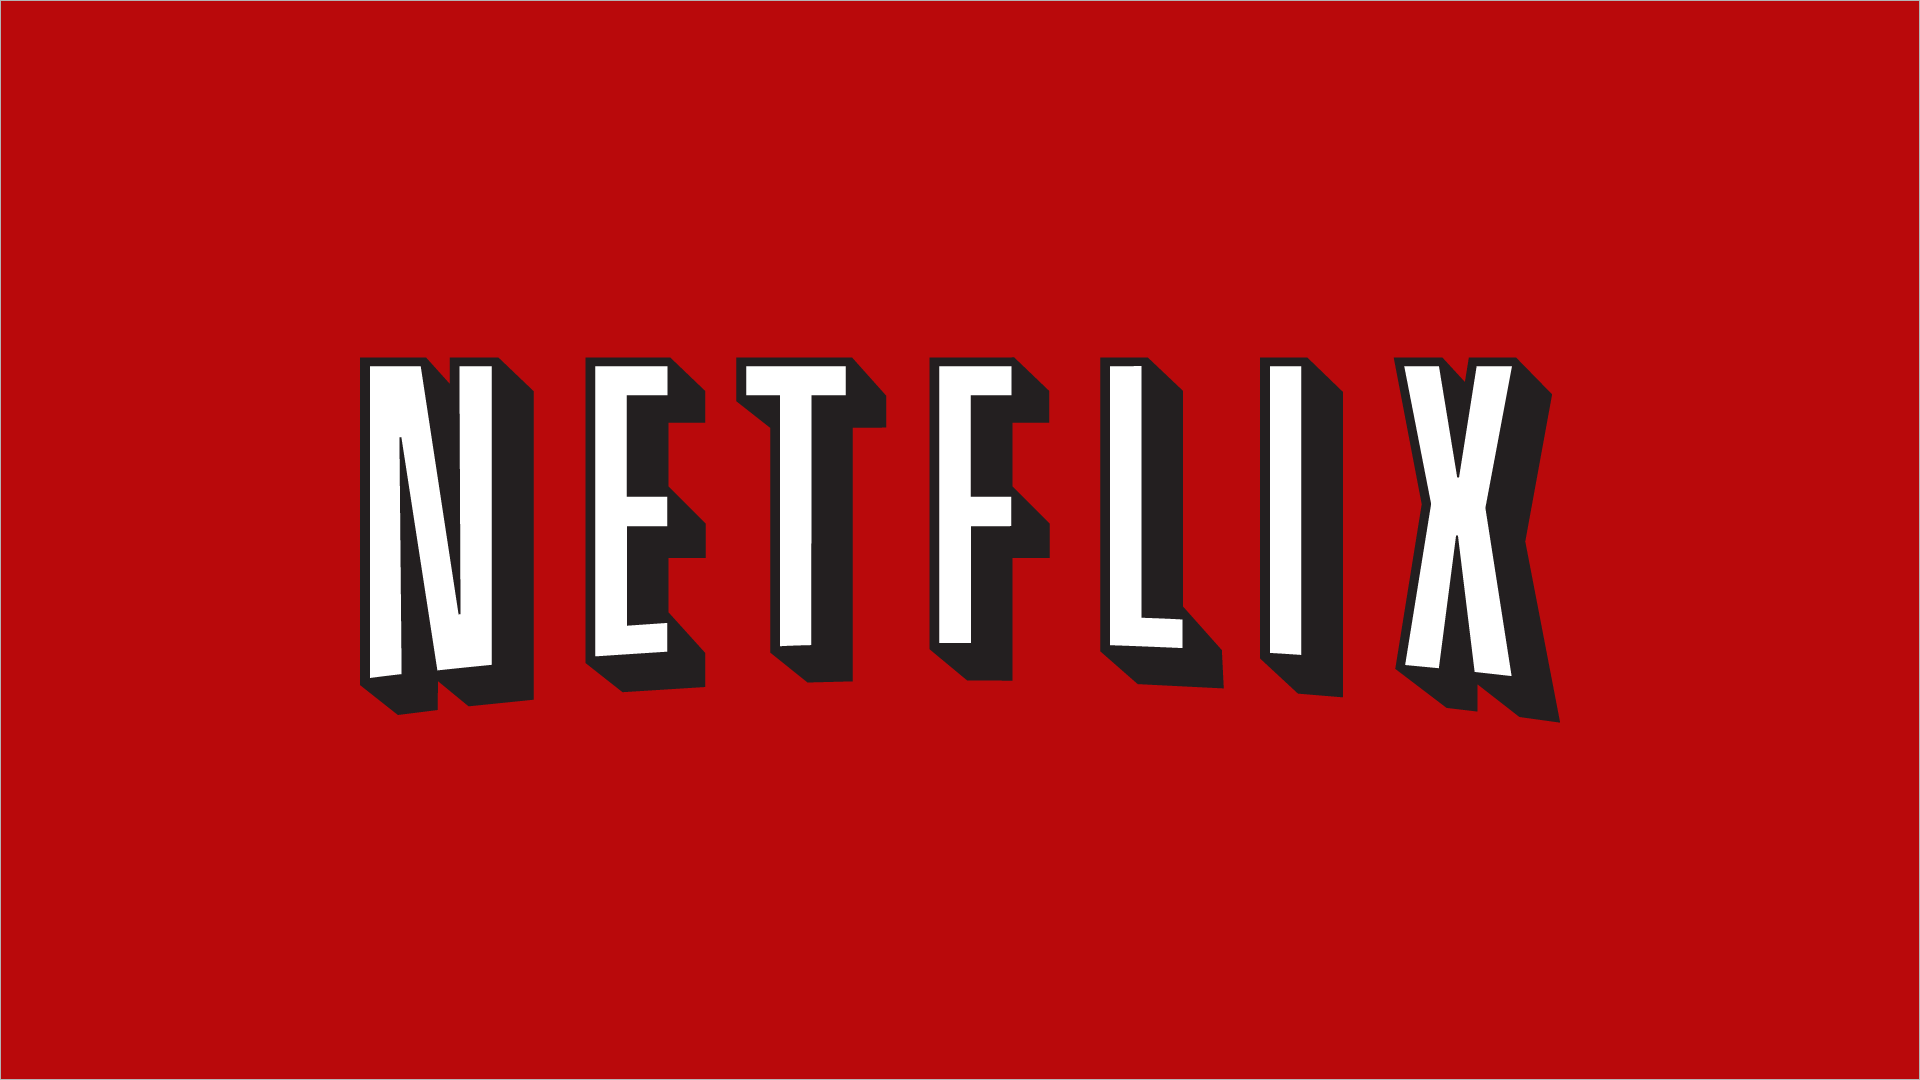 Netflix logo Wallpaper